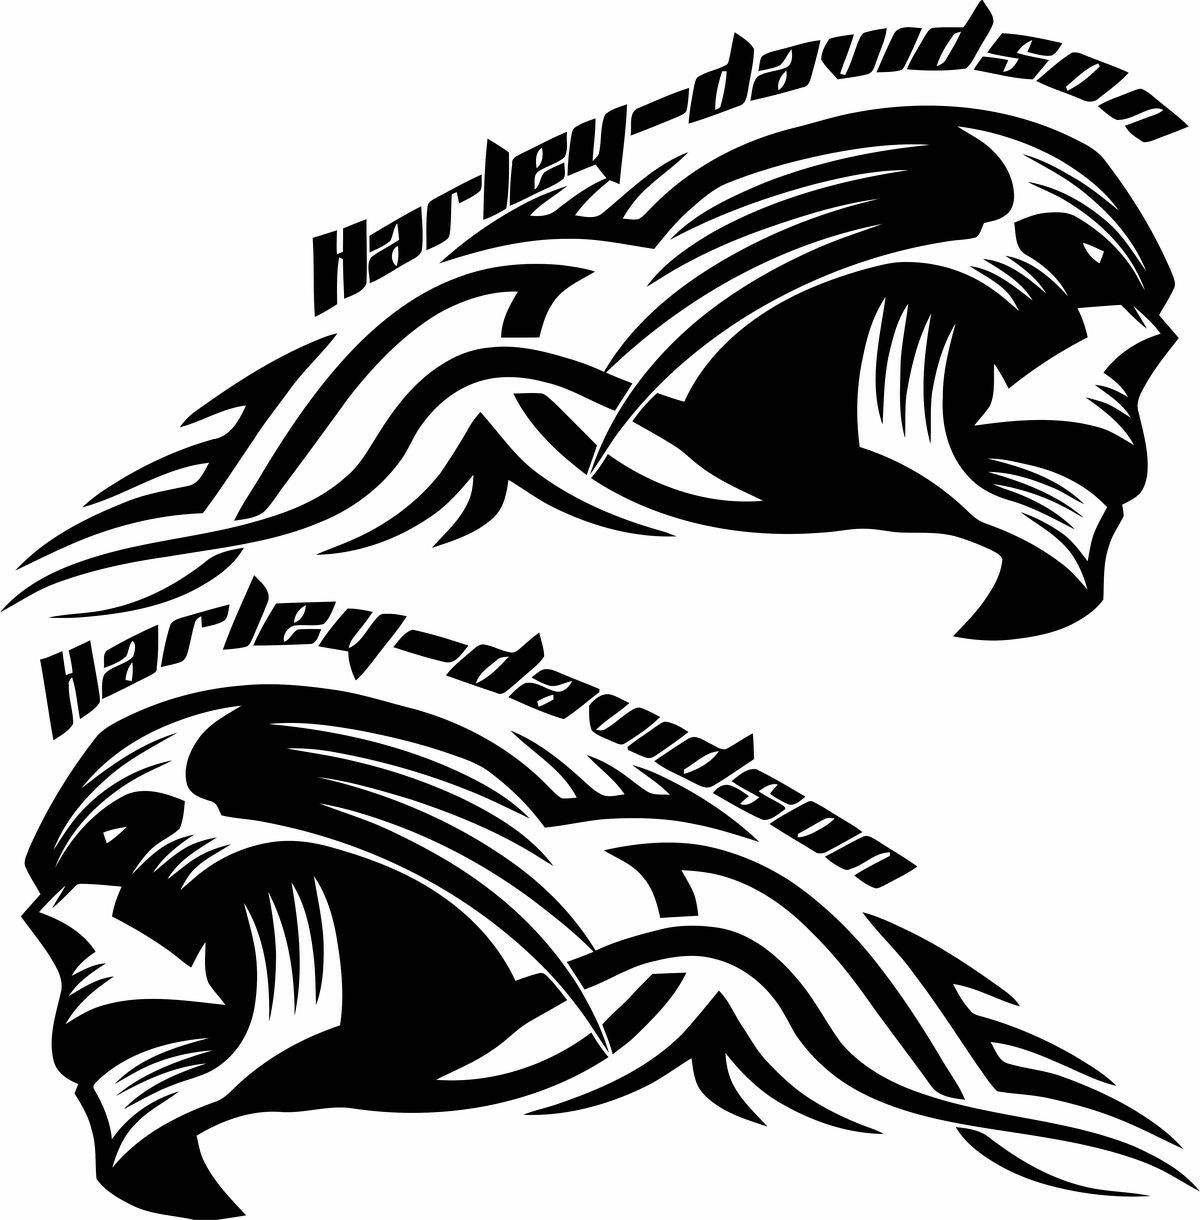 Cool For Helmet Stickers Cool For Helmet Stickers Vinyls - Harley davidsons motorcycles stickers